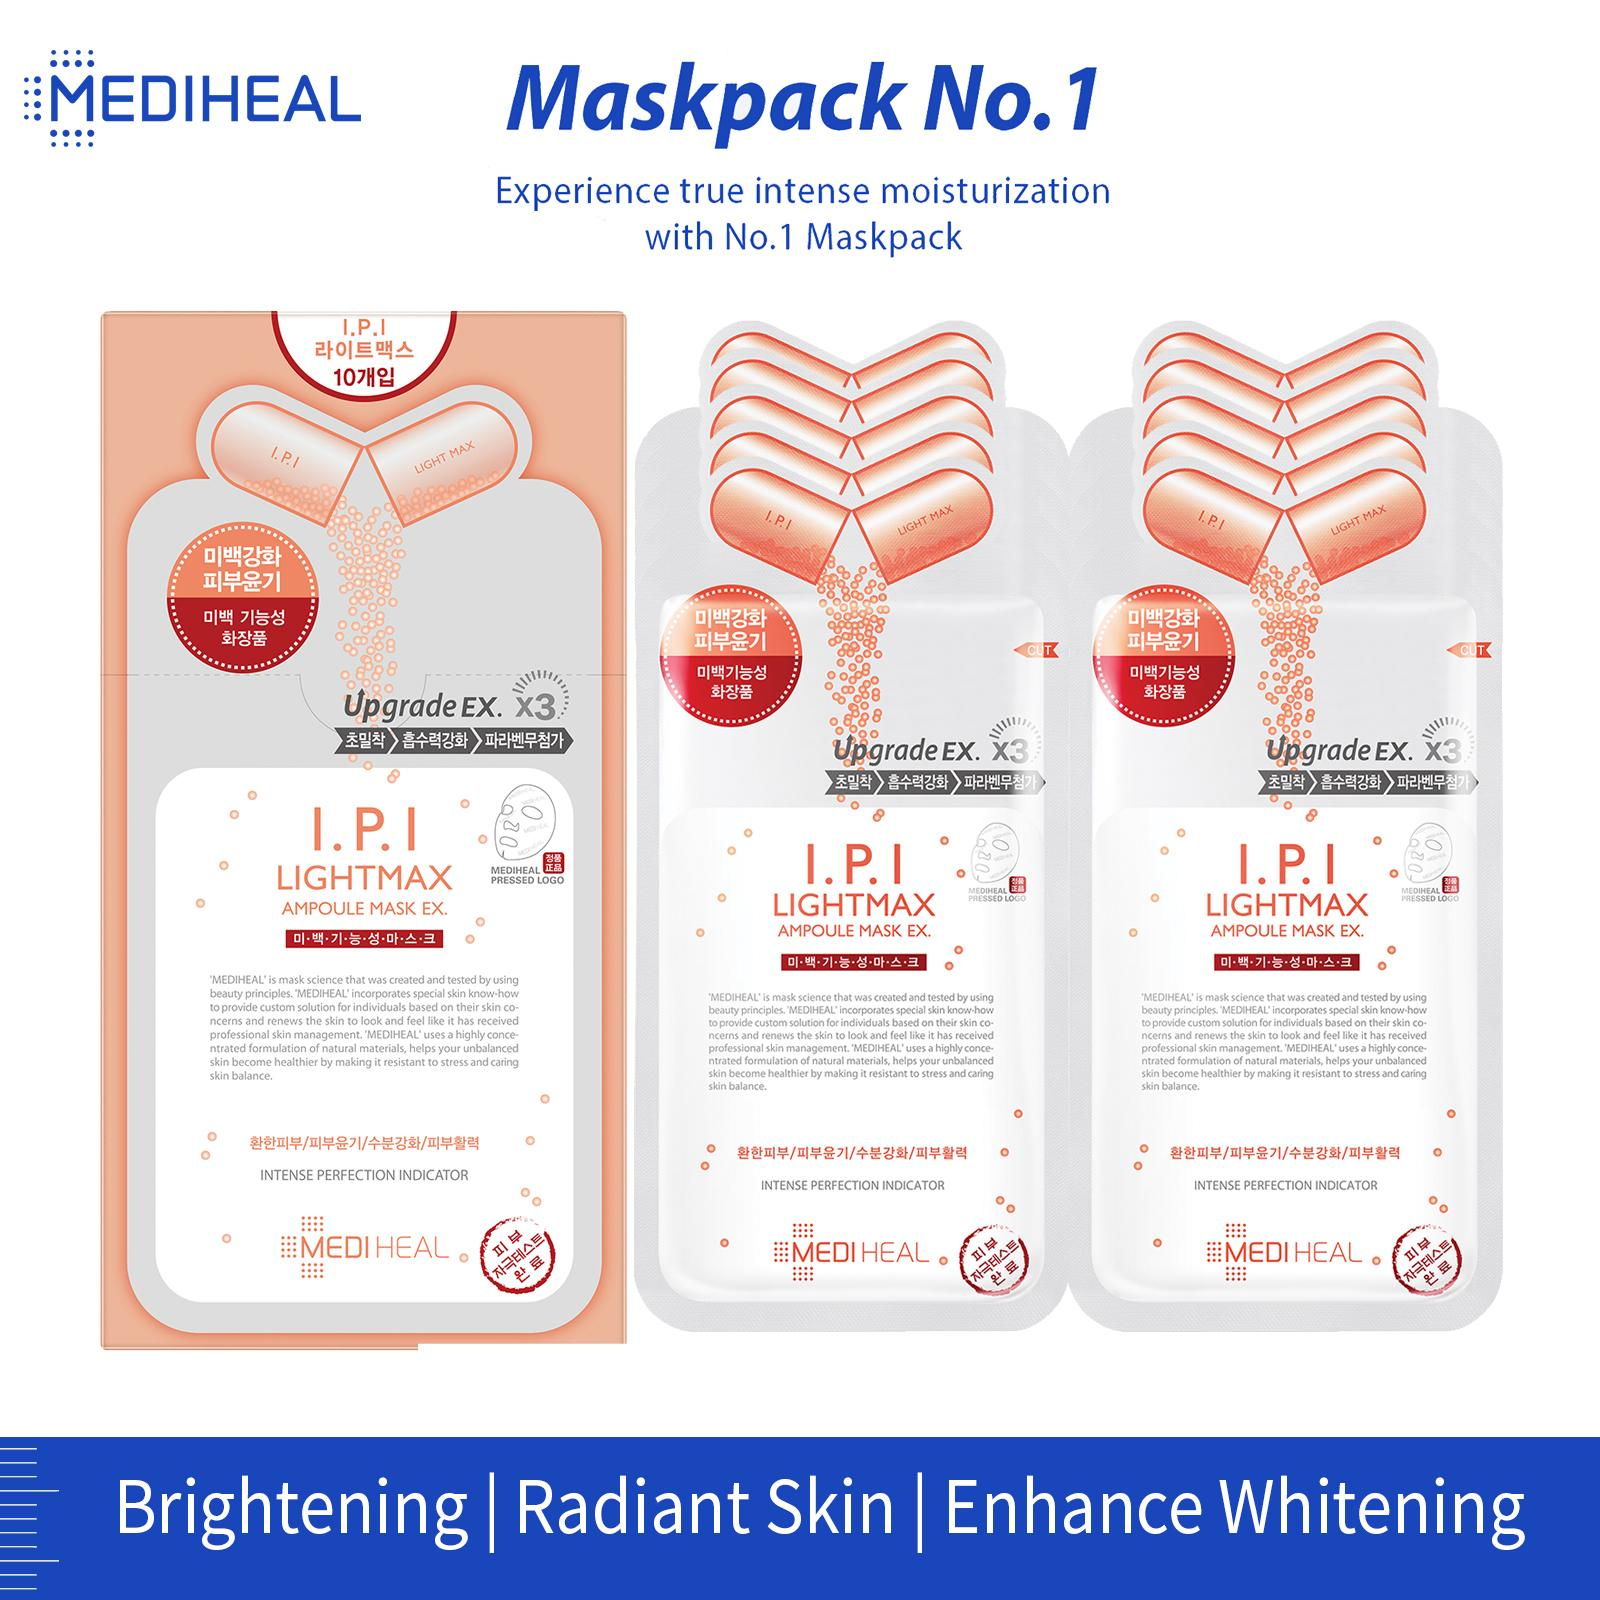 MEDIHEAL I.P.I Lightmax Ampoule Mask Box (27ml x 10pc)